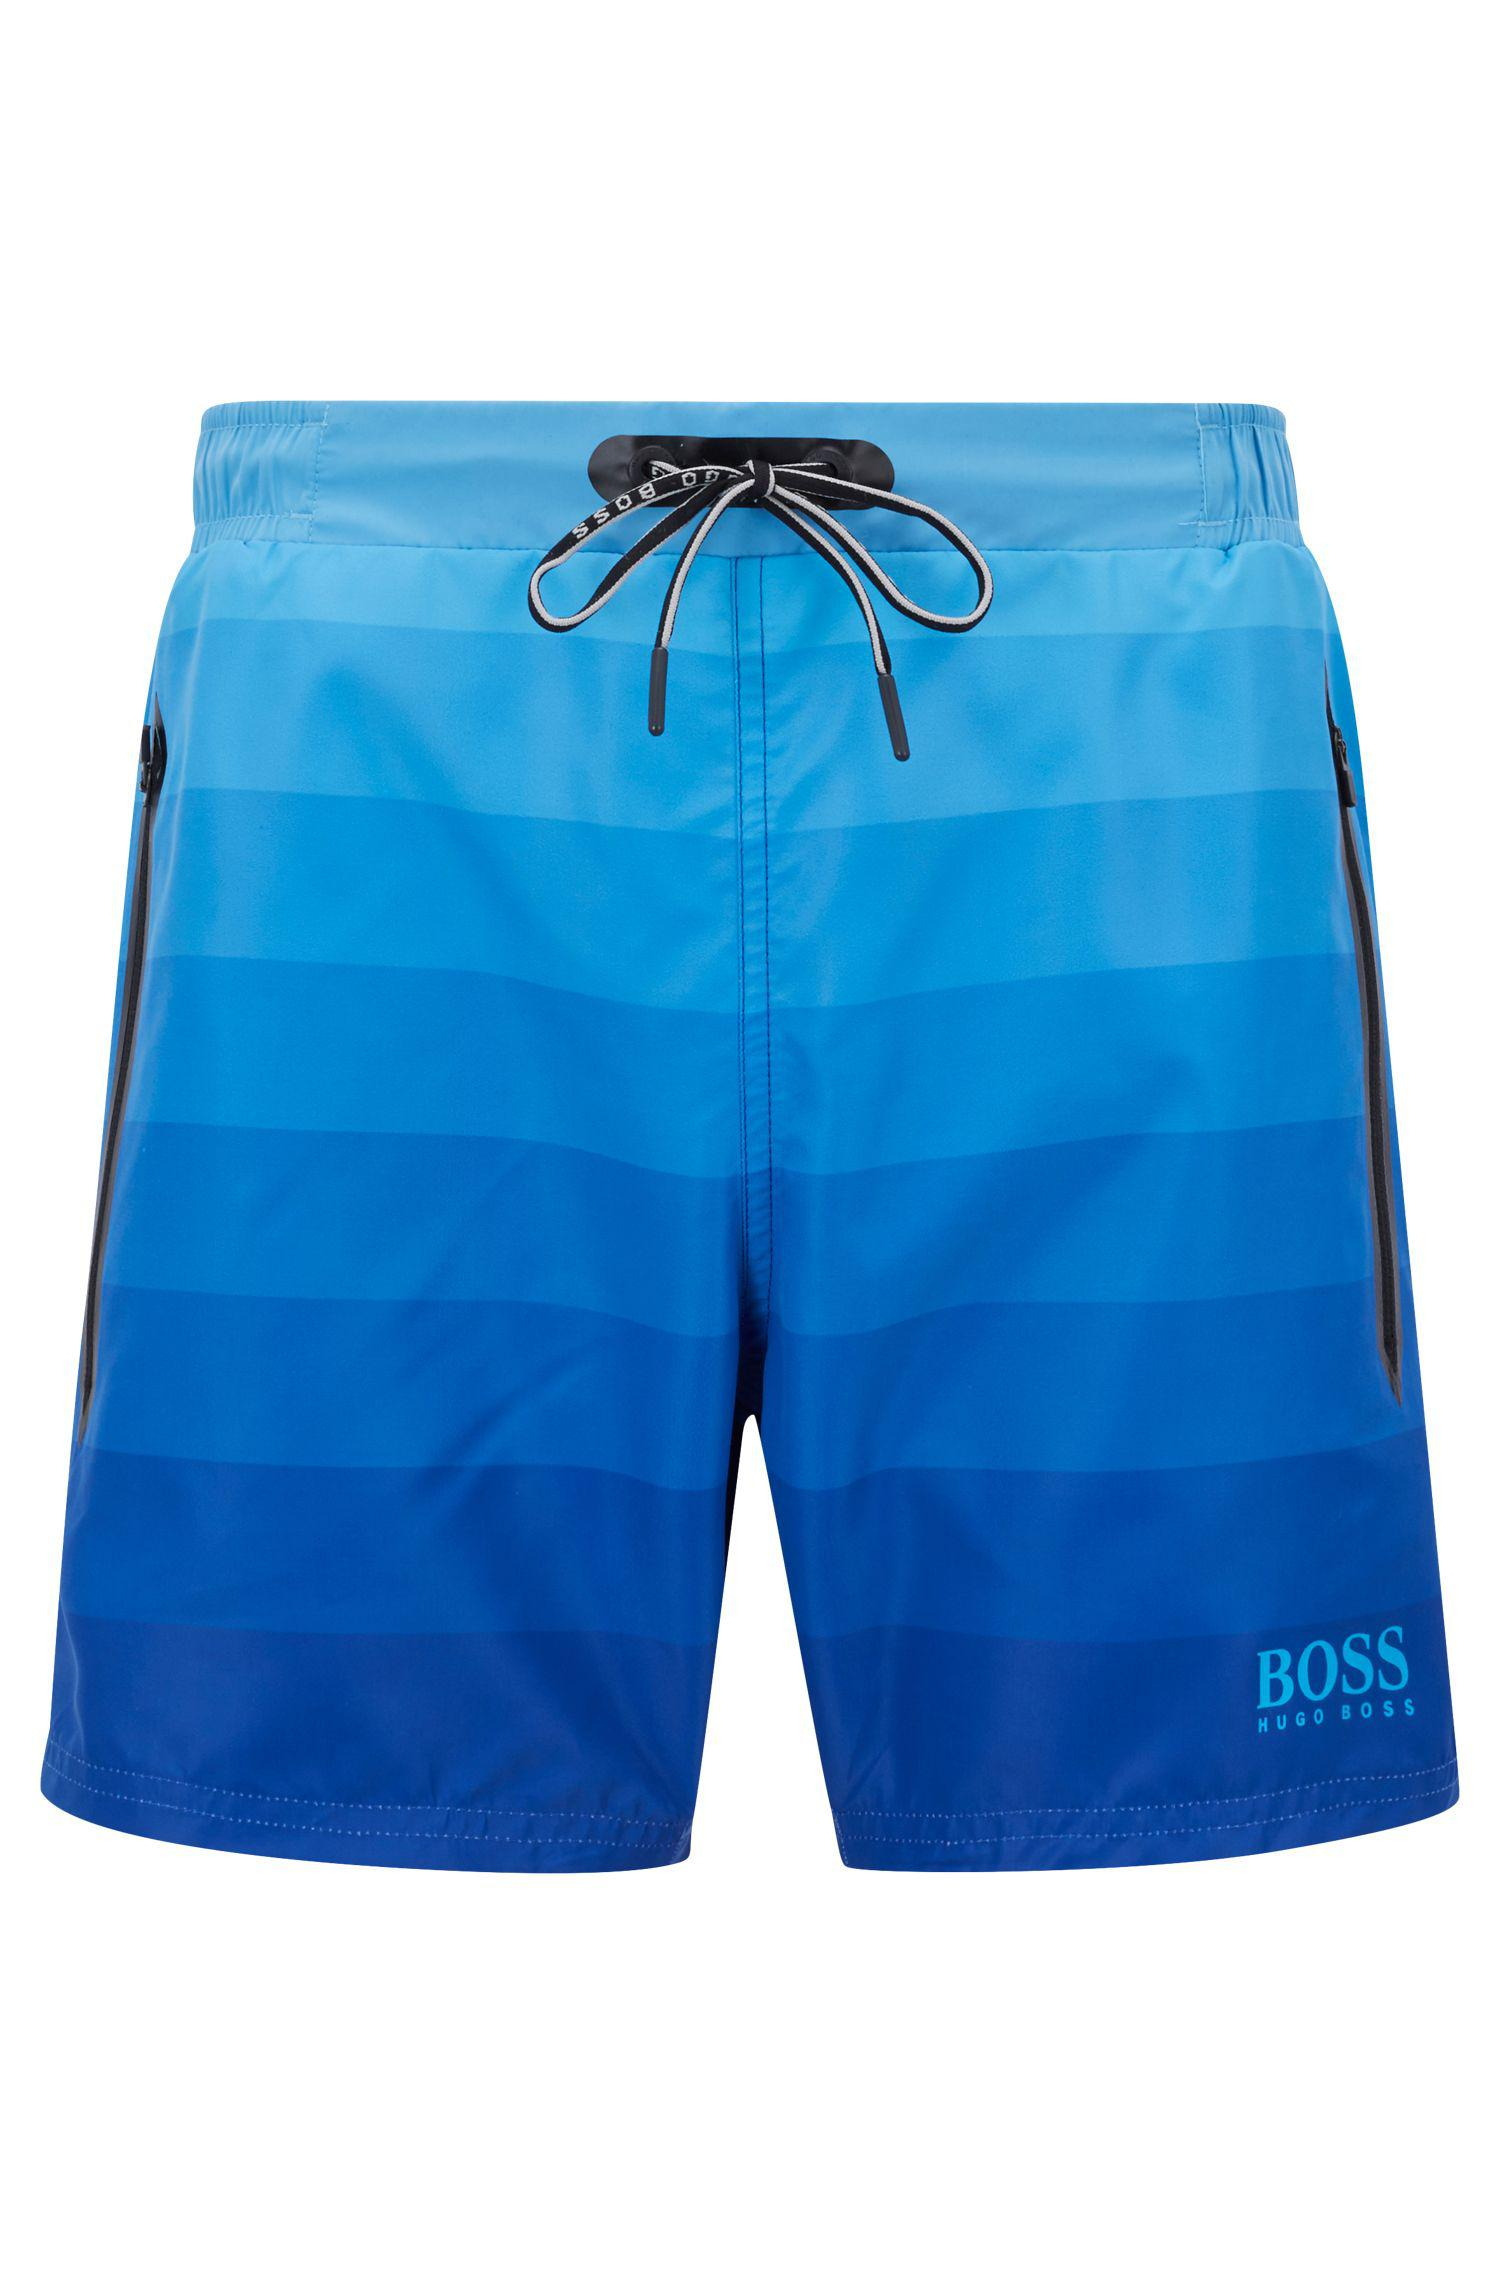 4766142bb0728 BOSS Quick-dry Swim Shorts With Dégradé Print And Zipped Pockets in ...